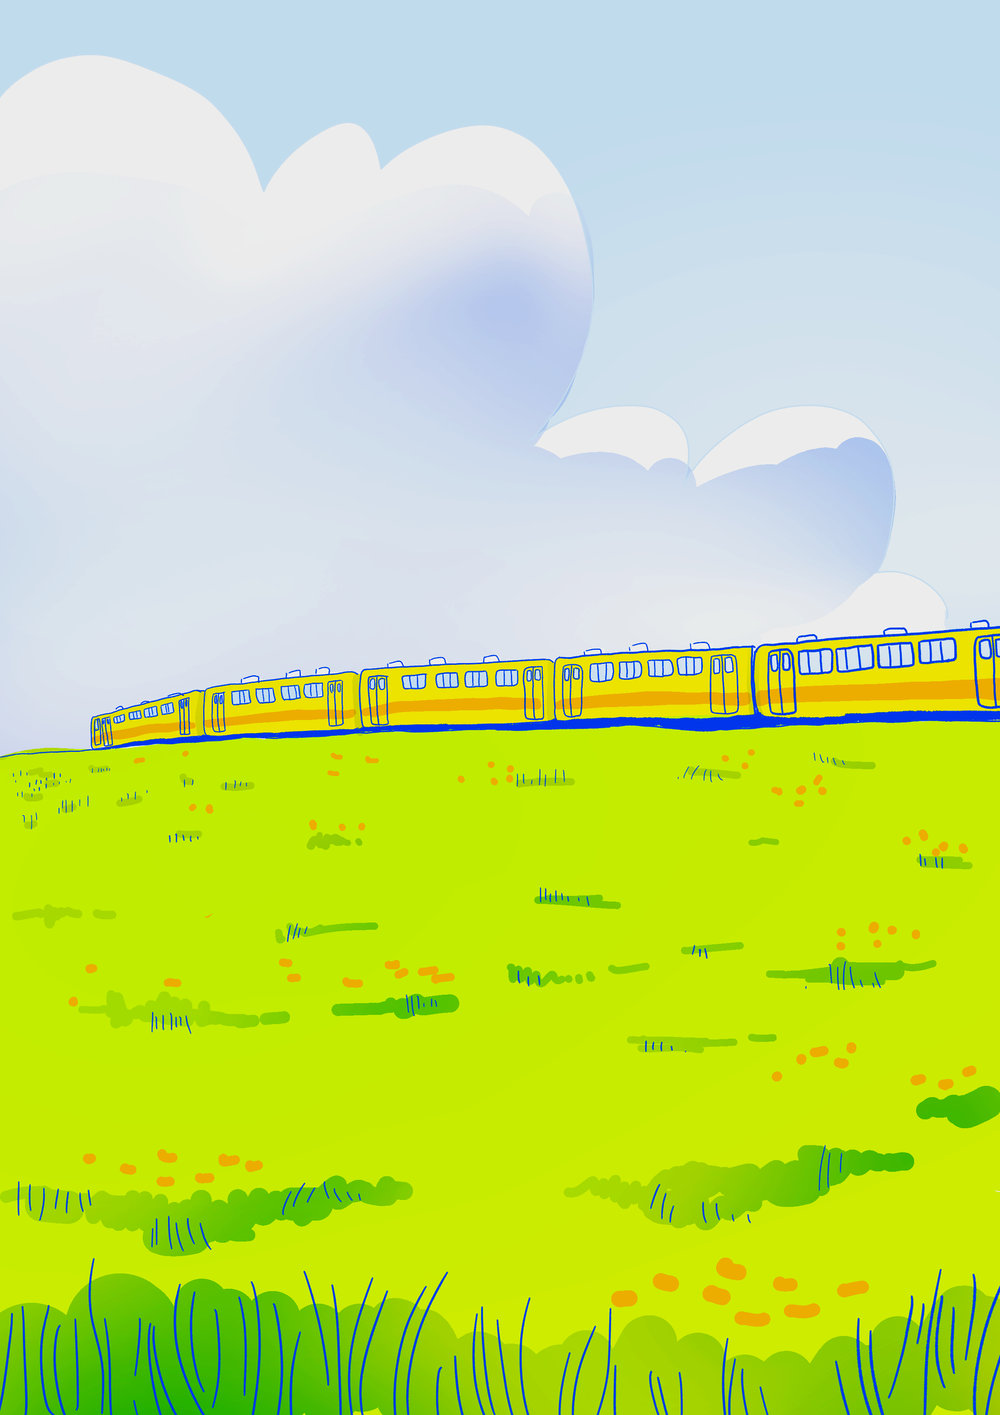 Landscape concept: inspired by Japanese train advertisements